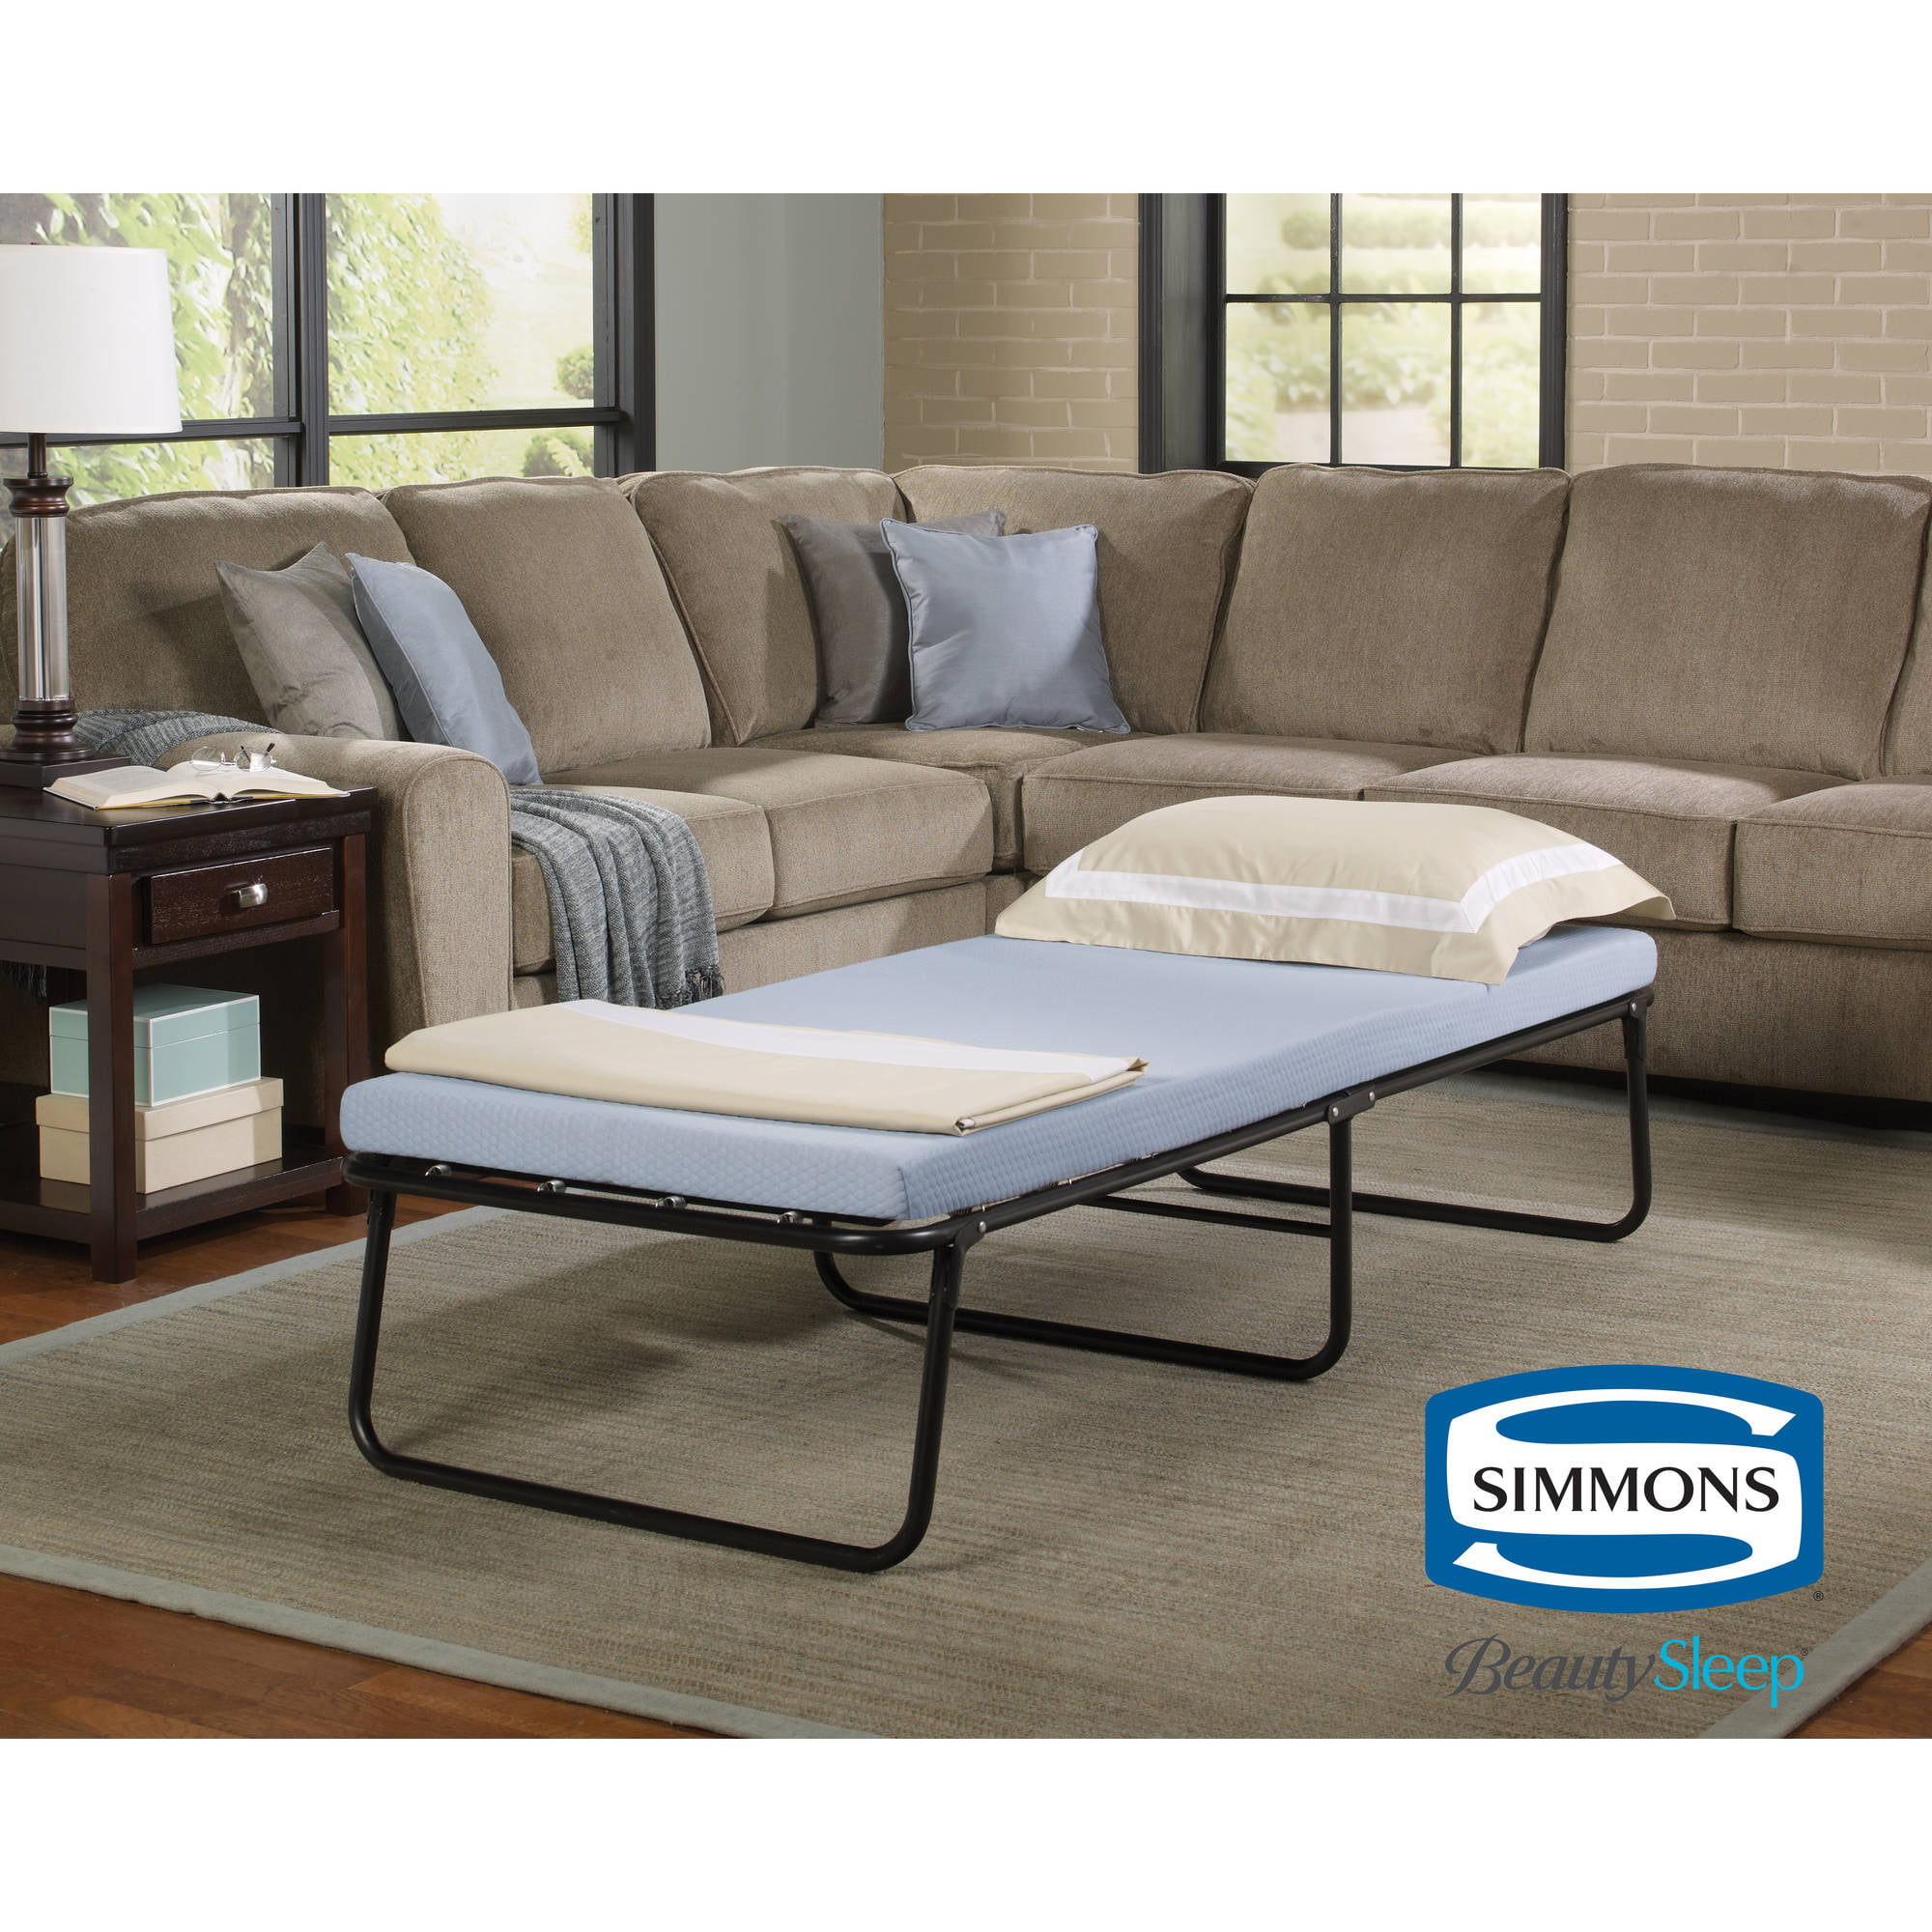 Simmons Beautyrest Latex Pillow Multiple Sizes Walmart